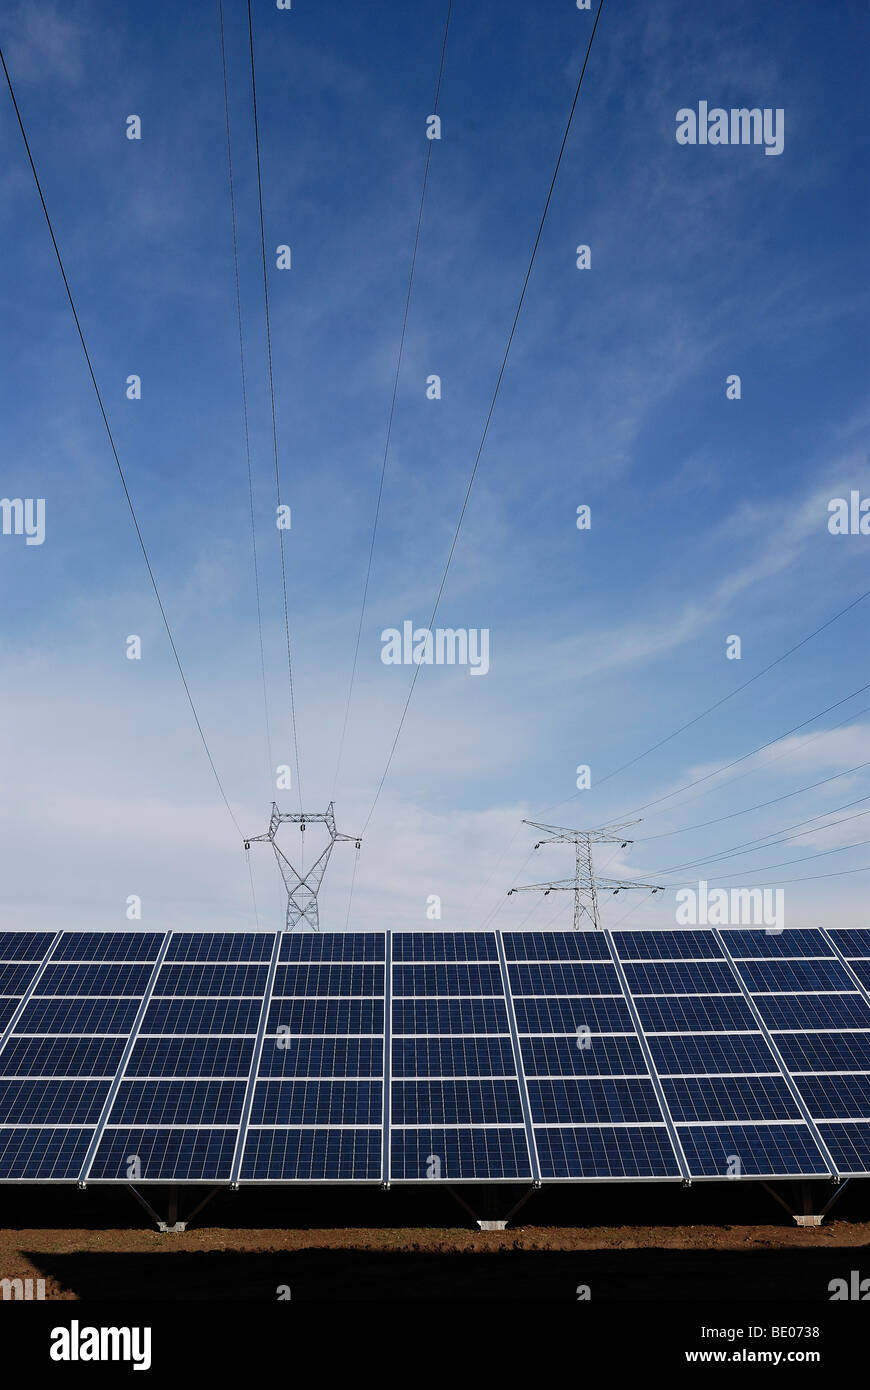 Solar panel and power line - Stock Image